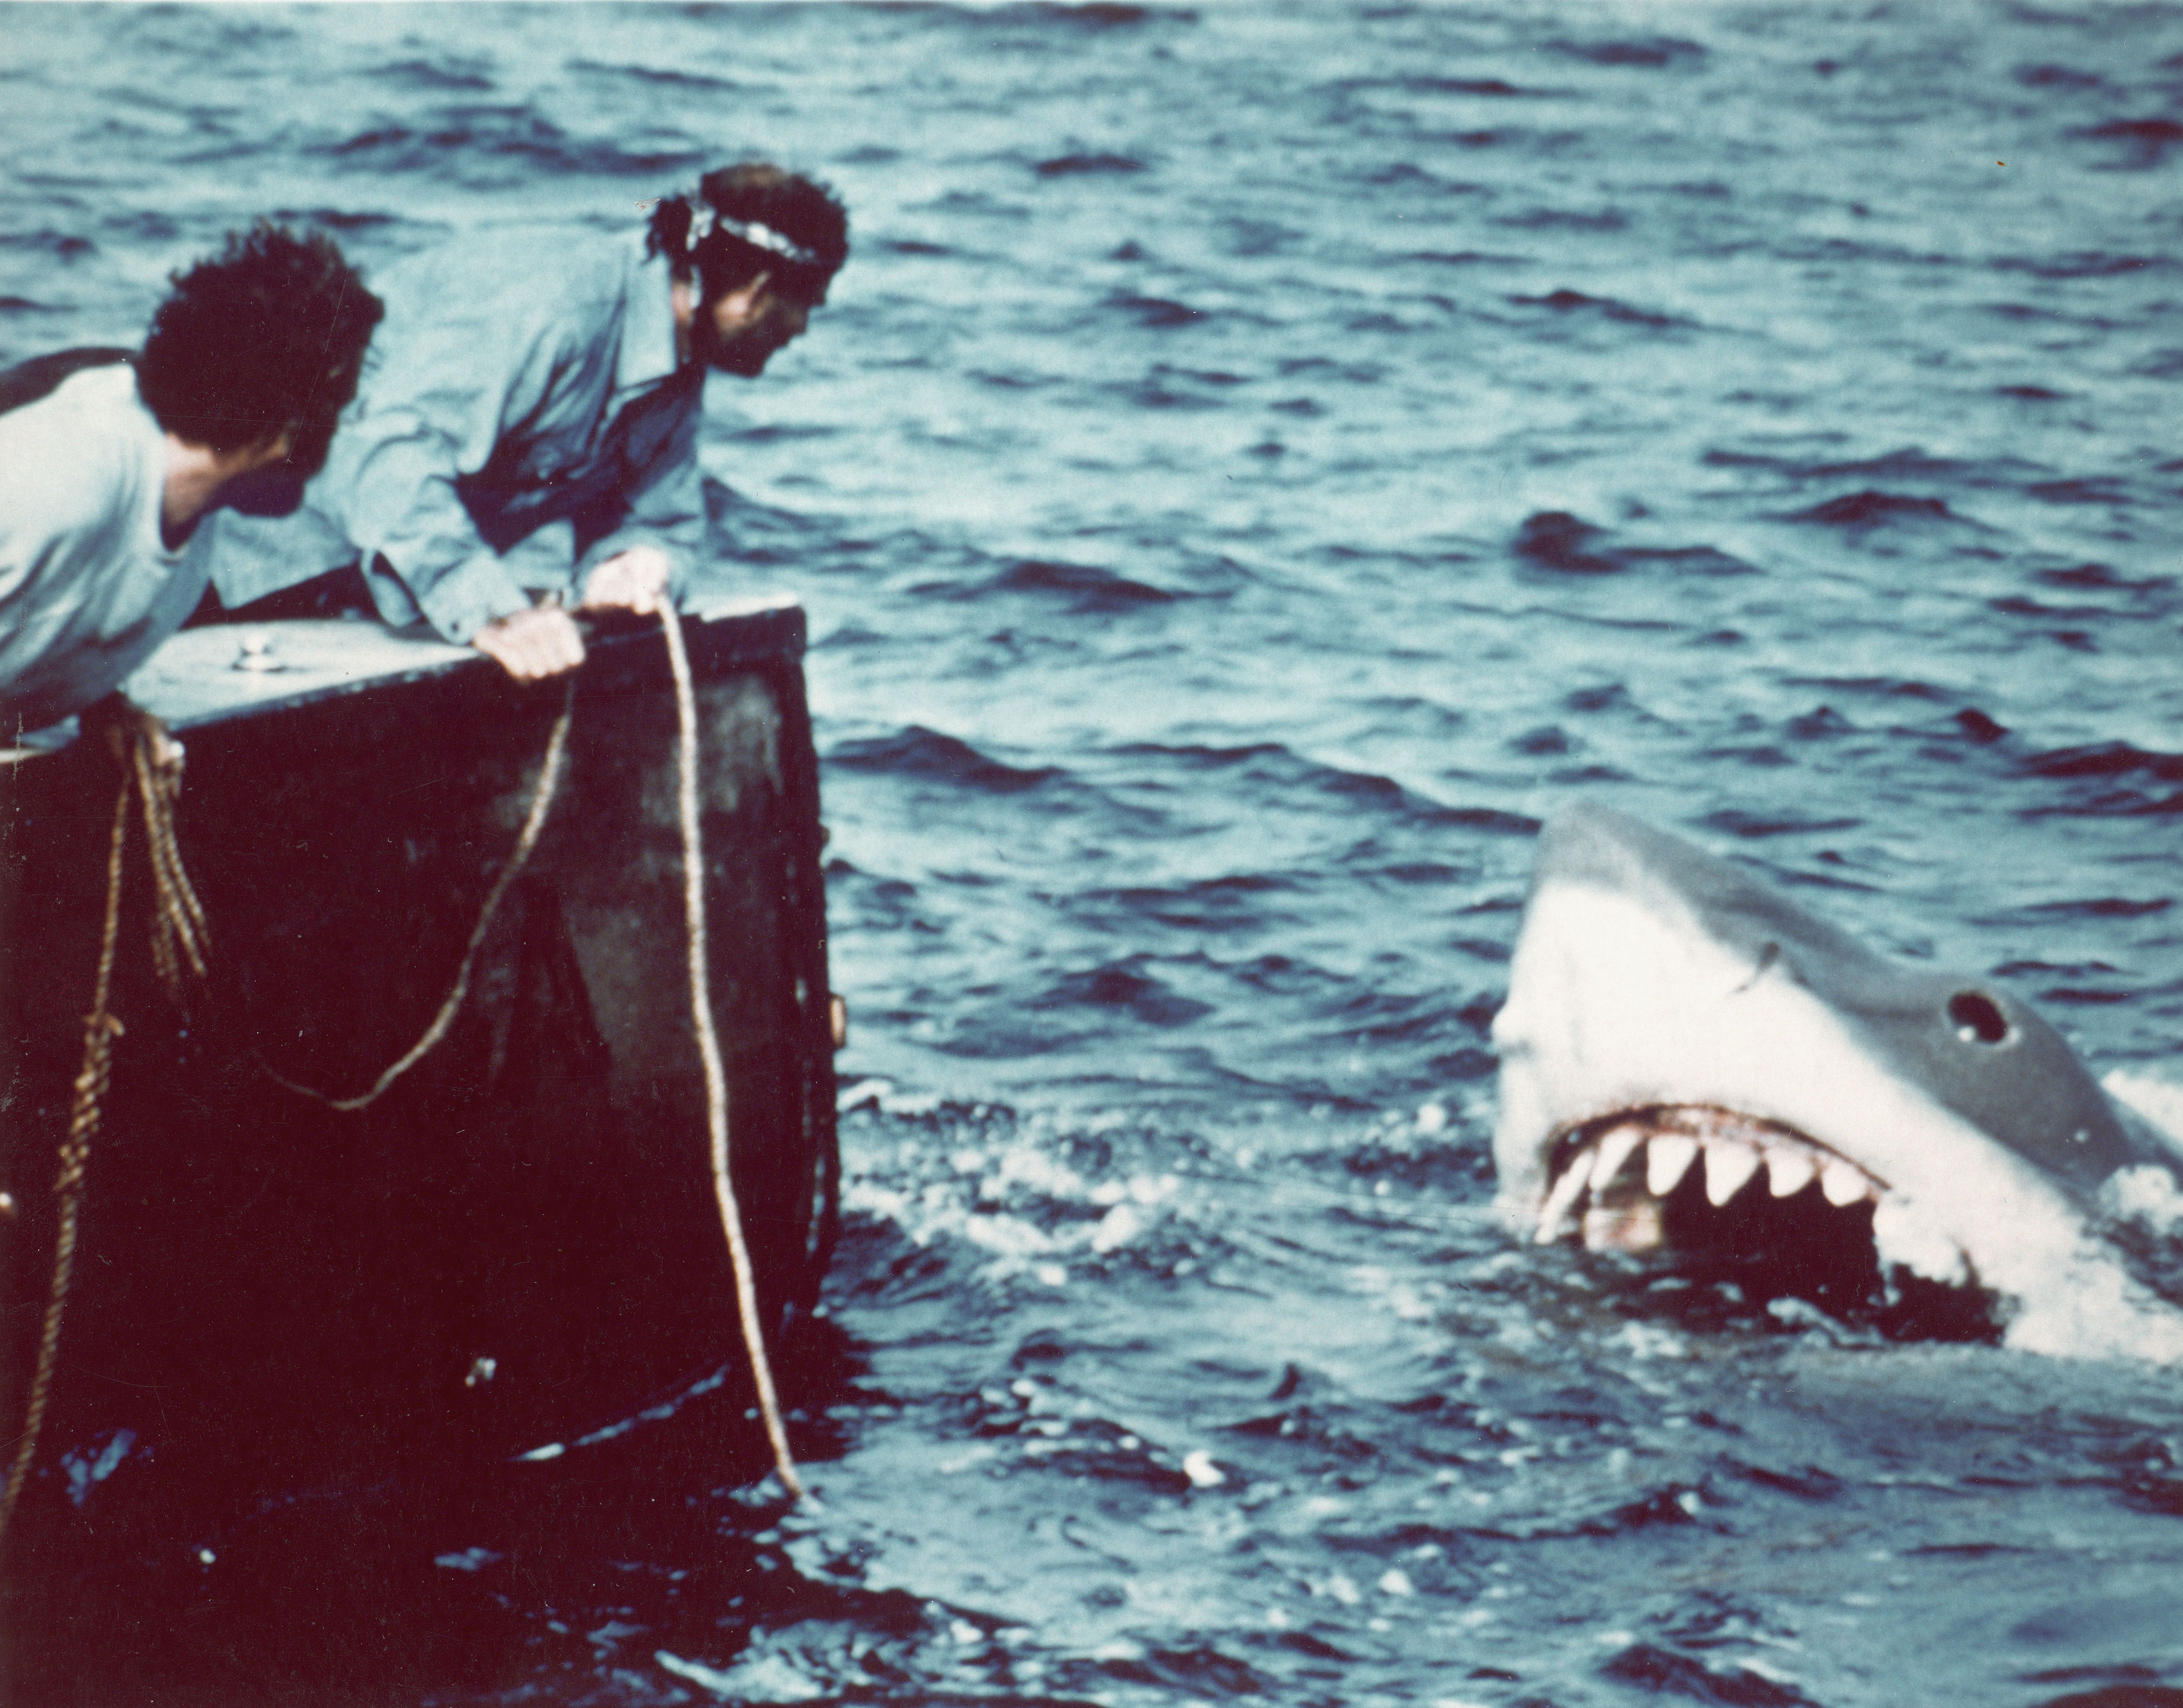 A scene from the movie 'Jaws.'